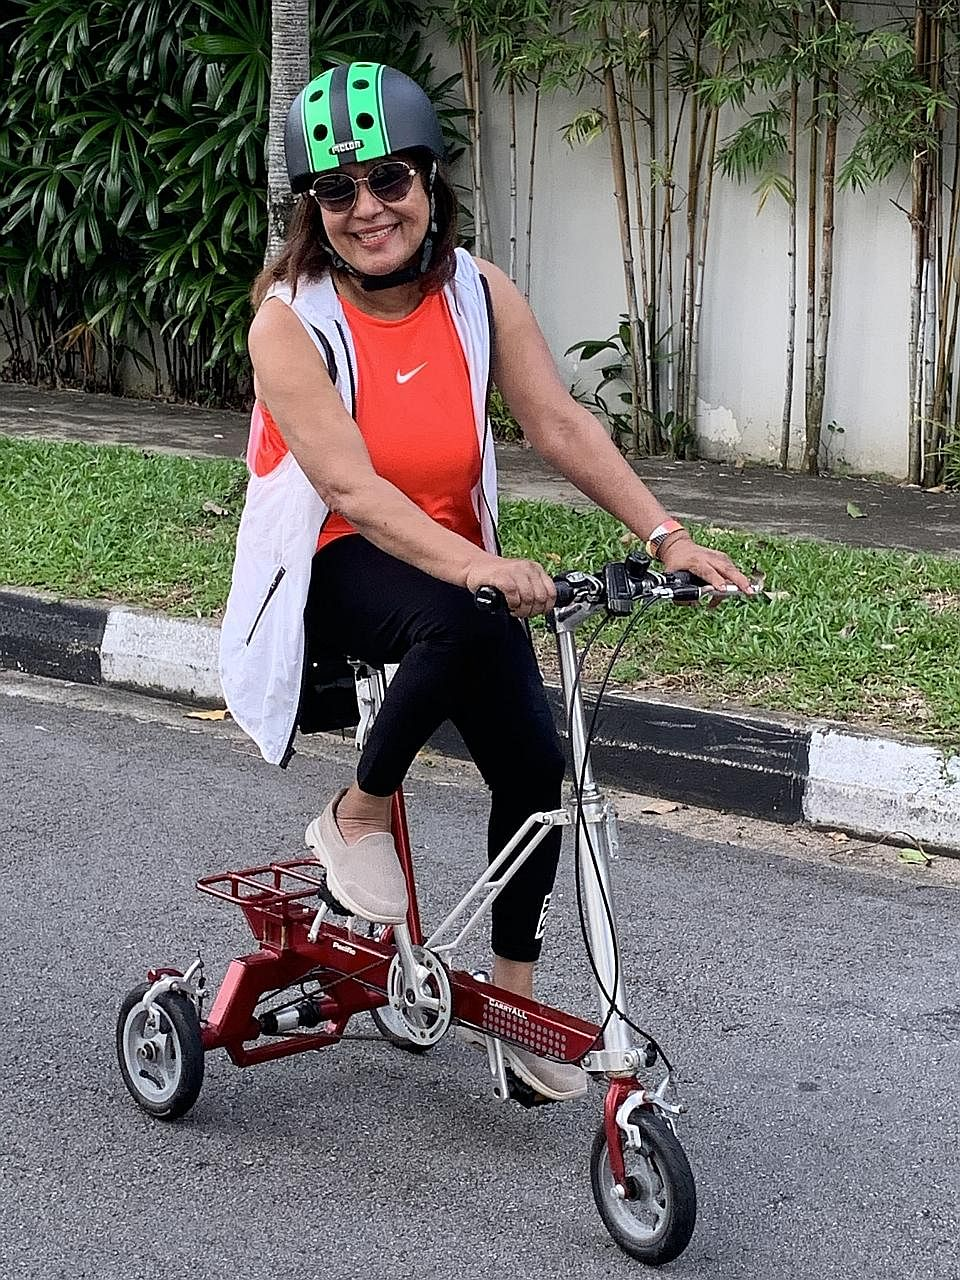 Lucy Shaw had a stroke almost nine years ago and after rehabilitation, she now cycles and does yoga, among other activities. Shaw will take part in the Singapore National Stroke Association's Stepping Out for Stroke virtual walk and The Straits Times